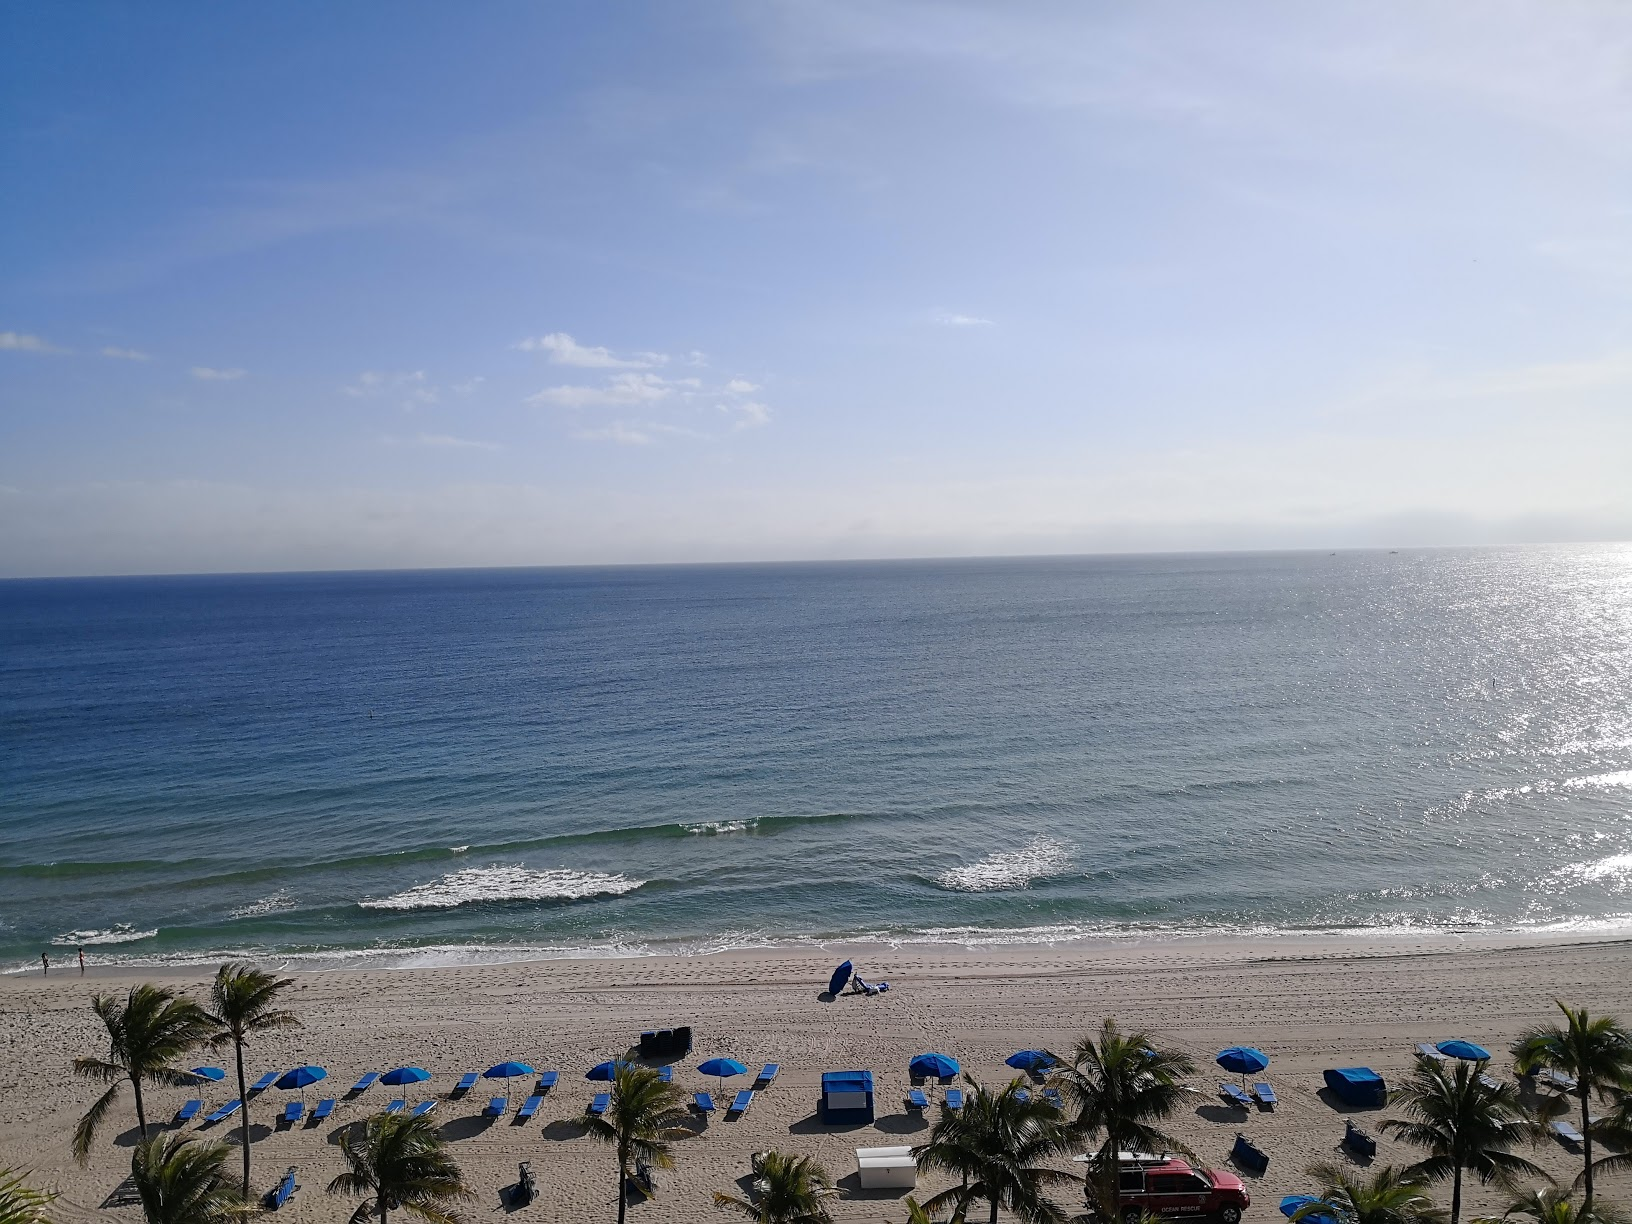 The view from the pool deck at Ritz Carlton Fort Lauderdale.